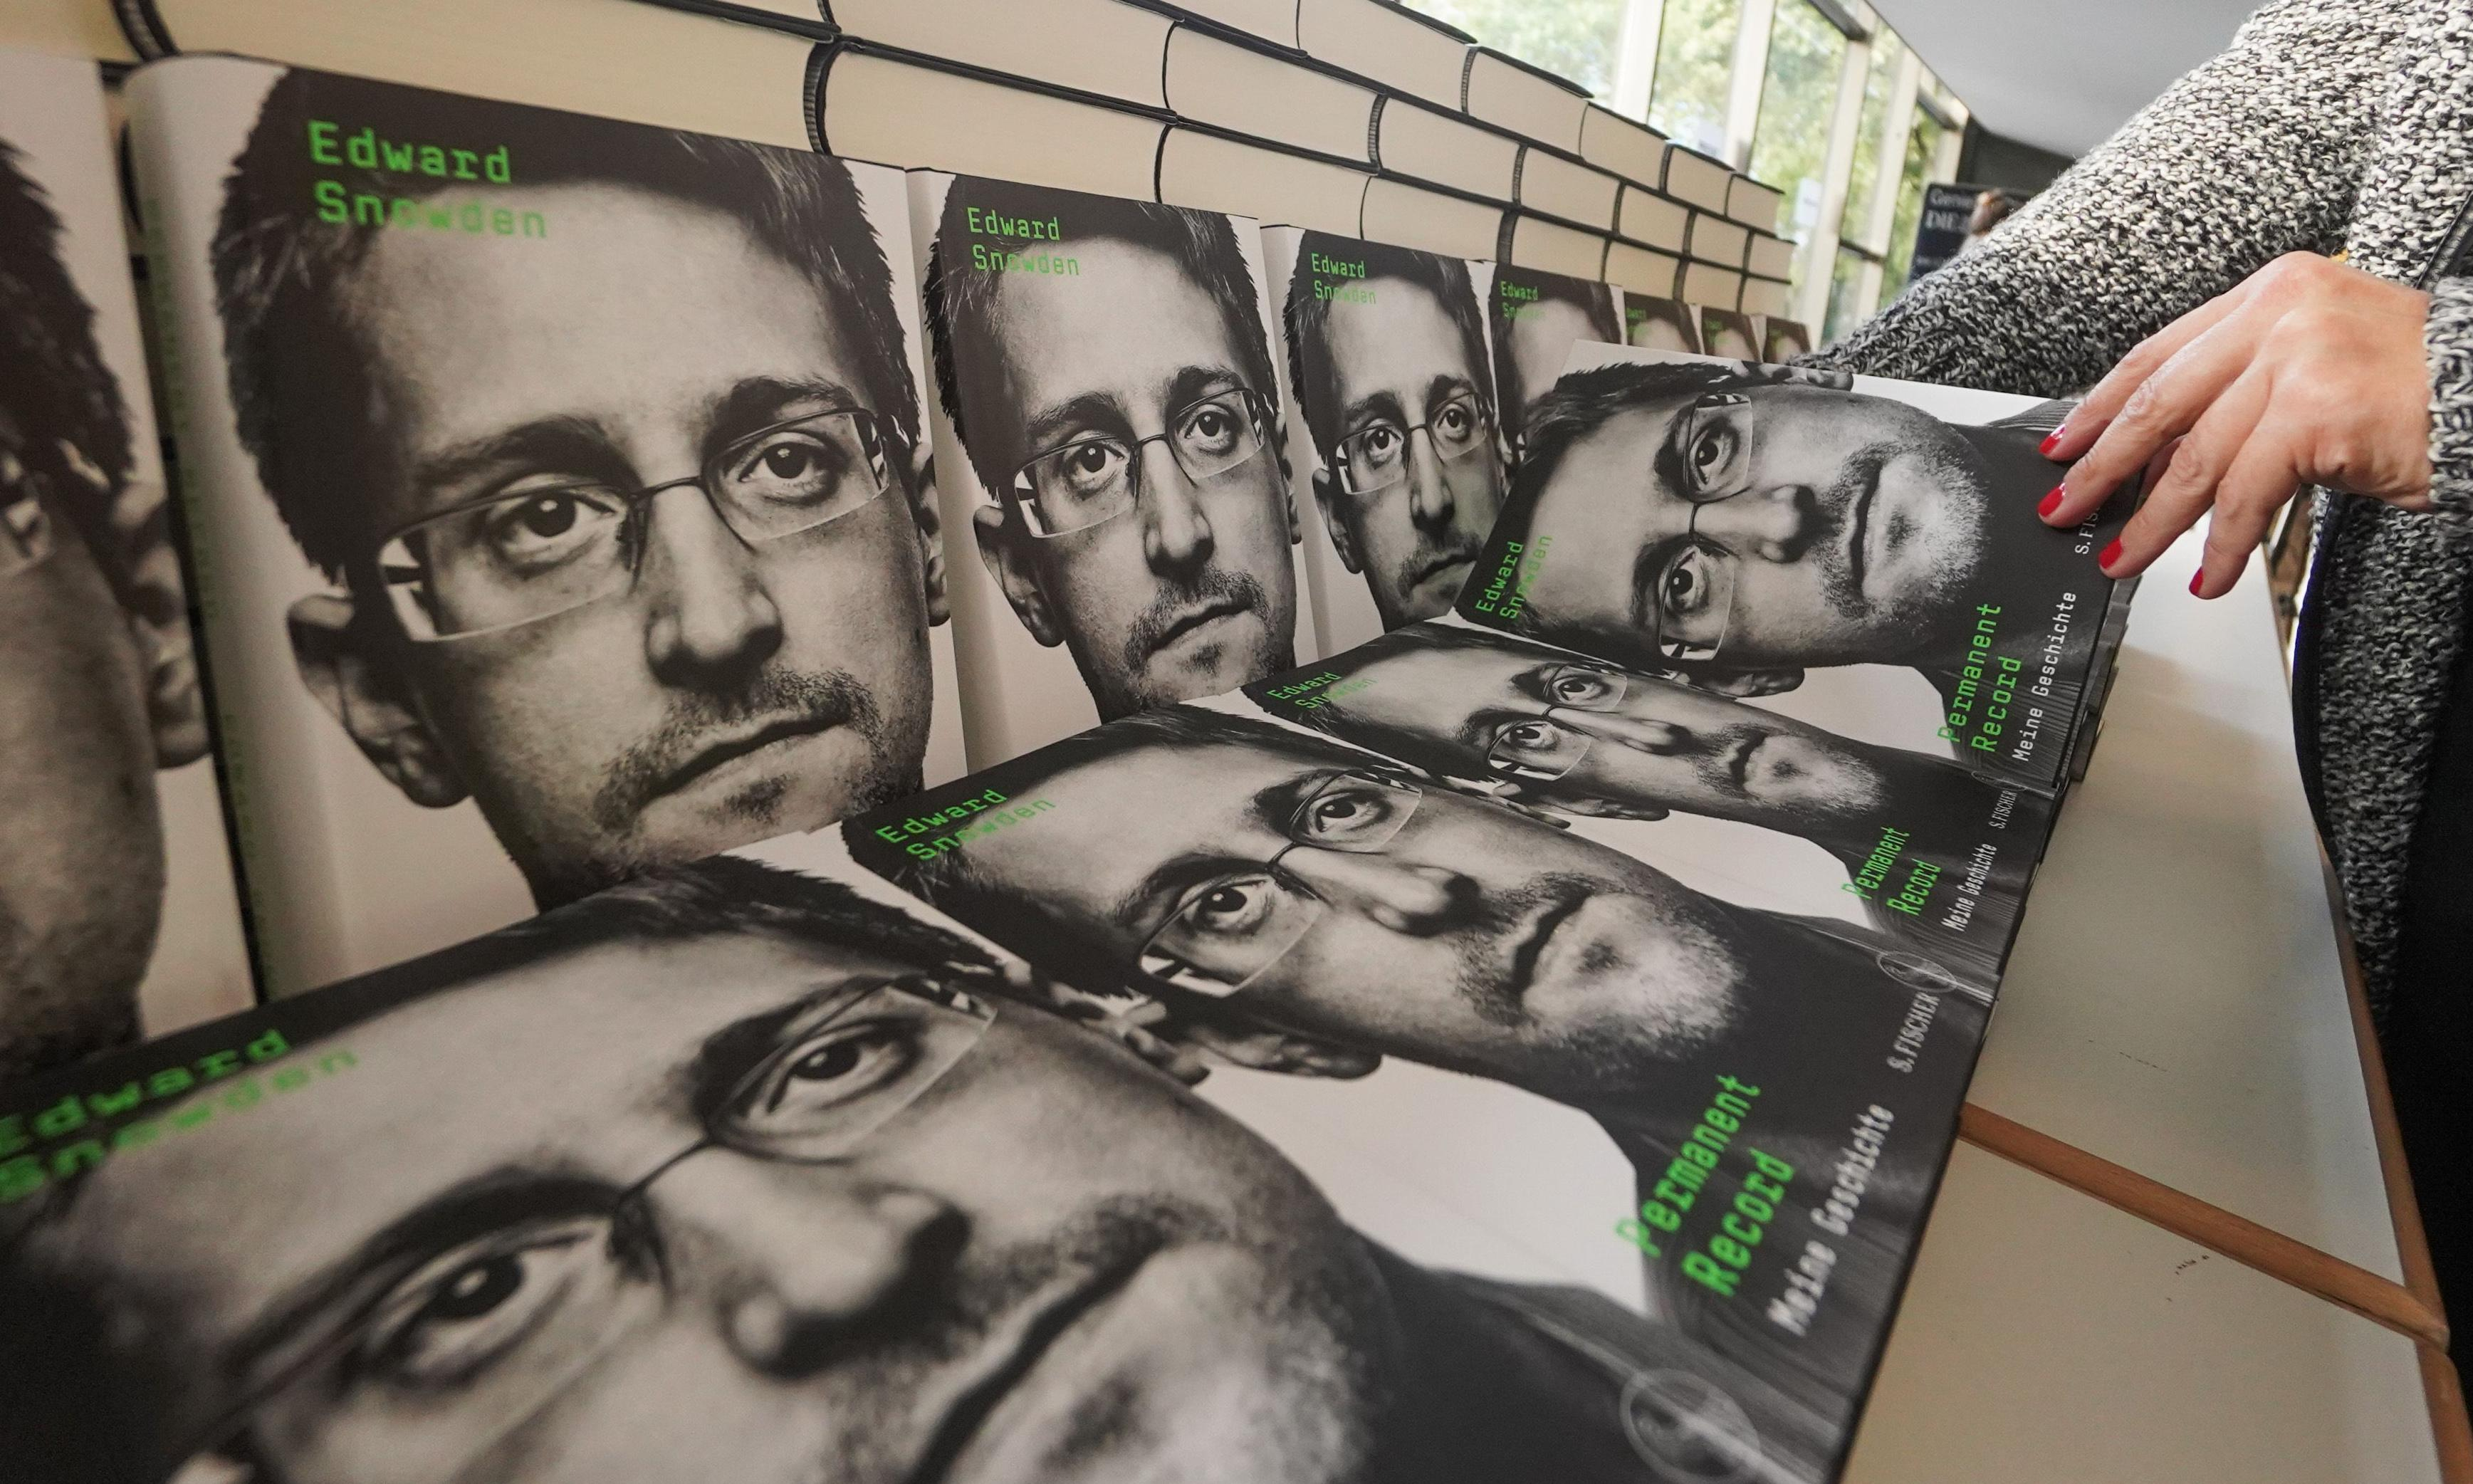 Edward Snowden's profits from memoir must go to US government, judge rules